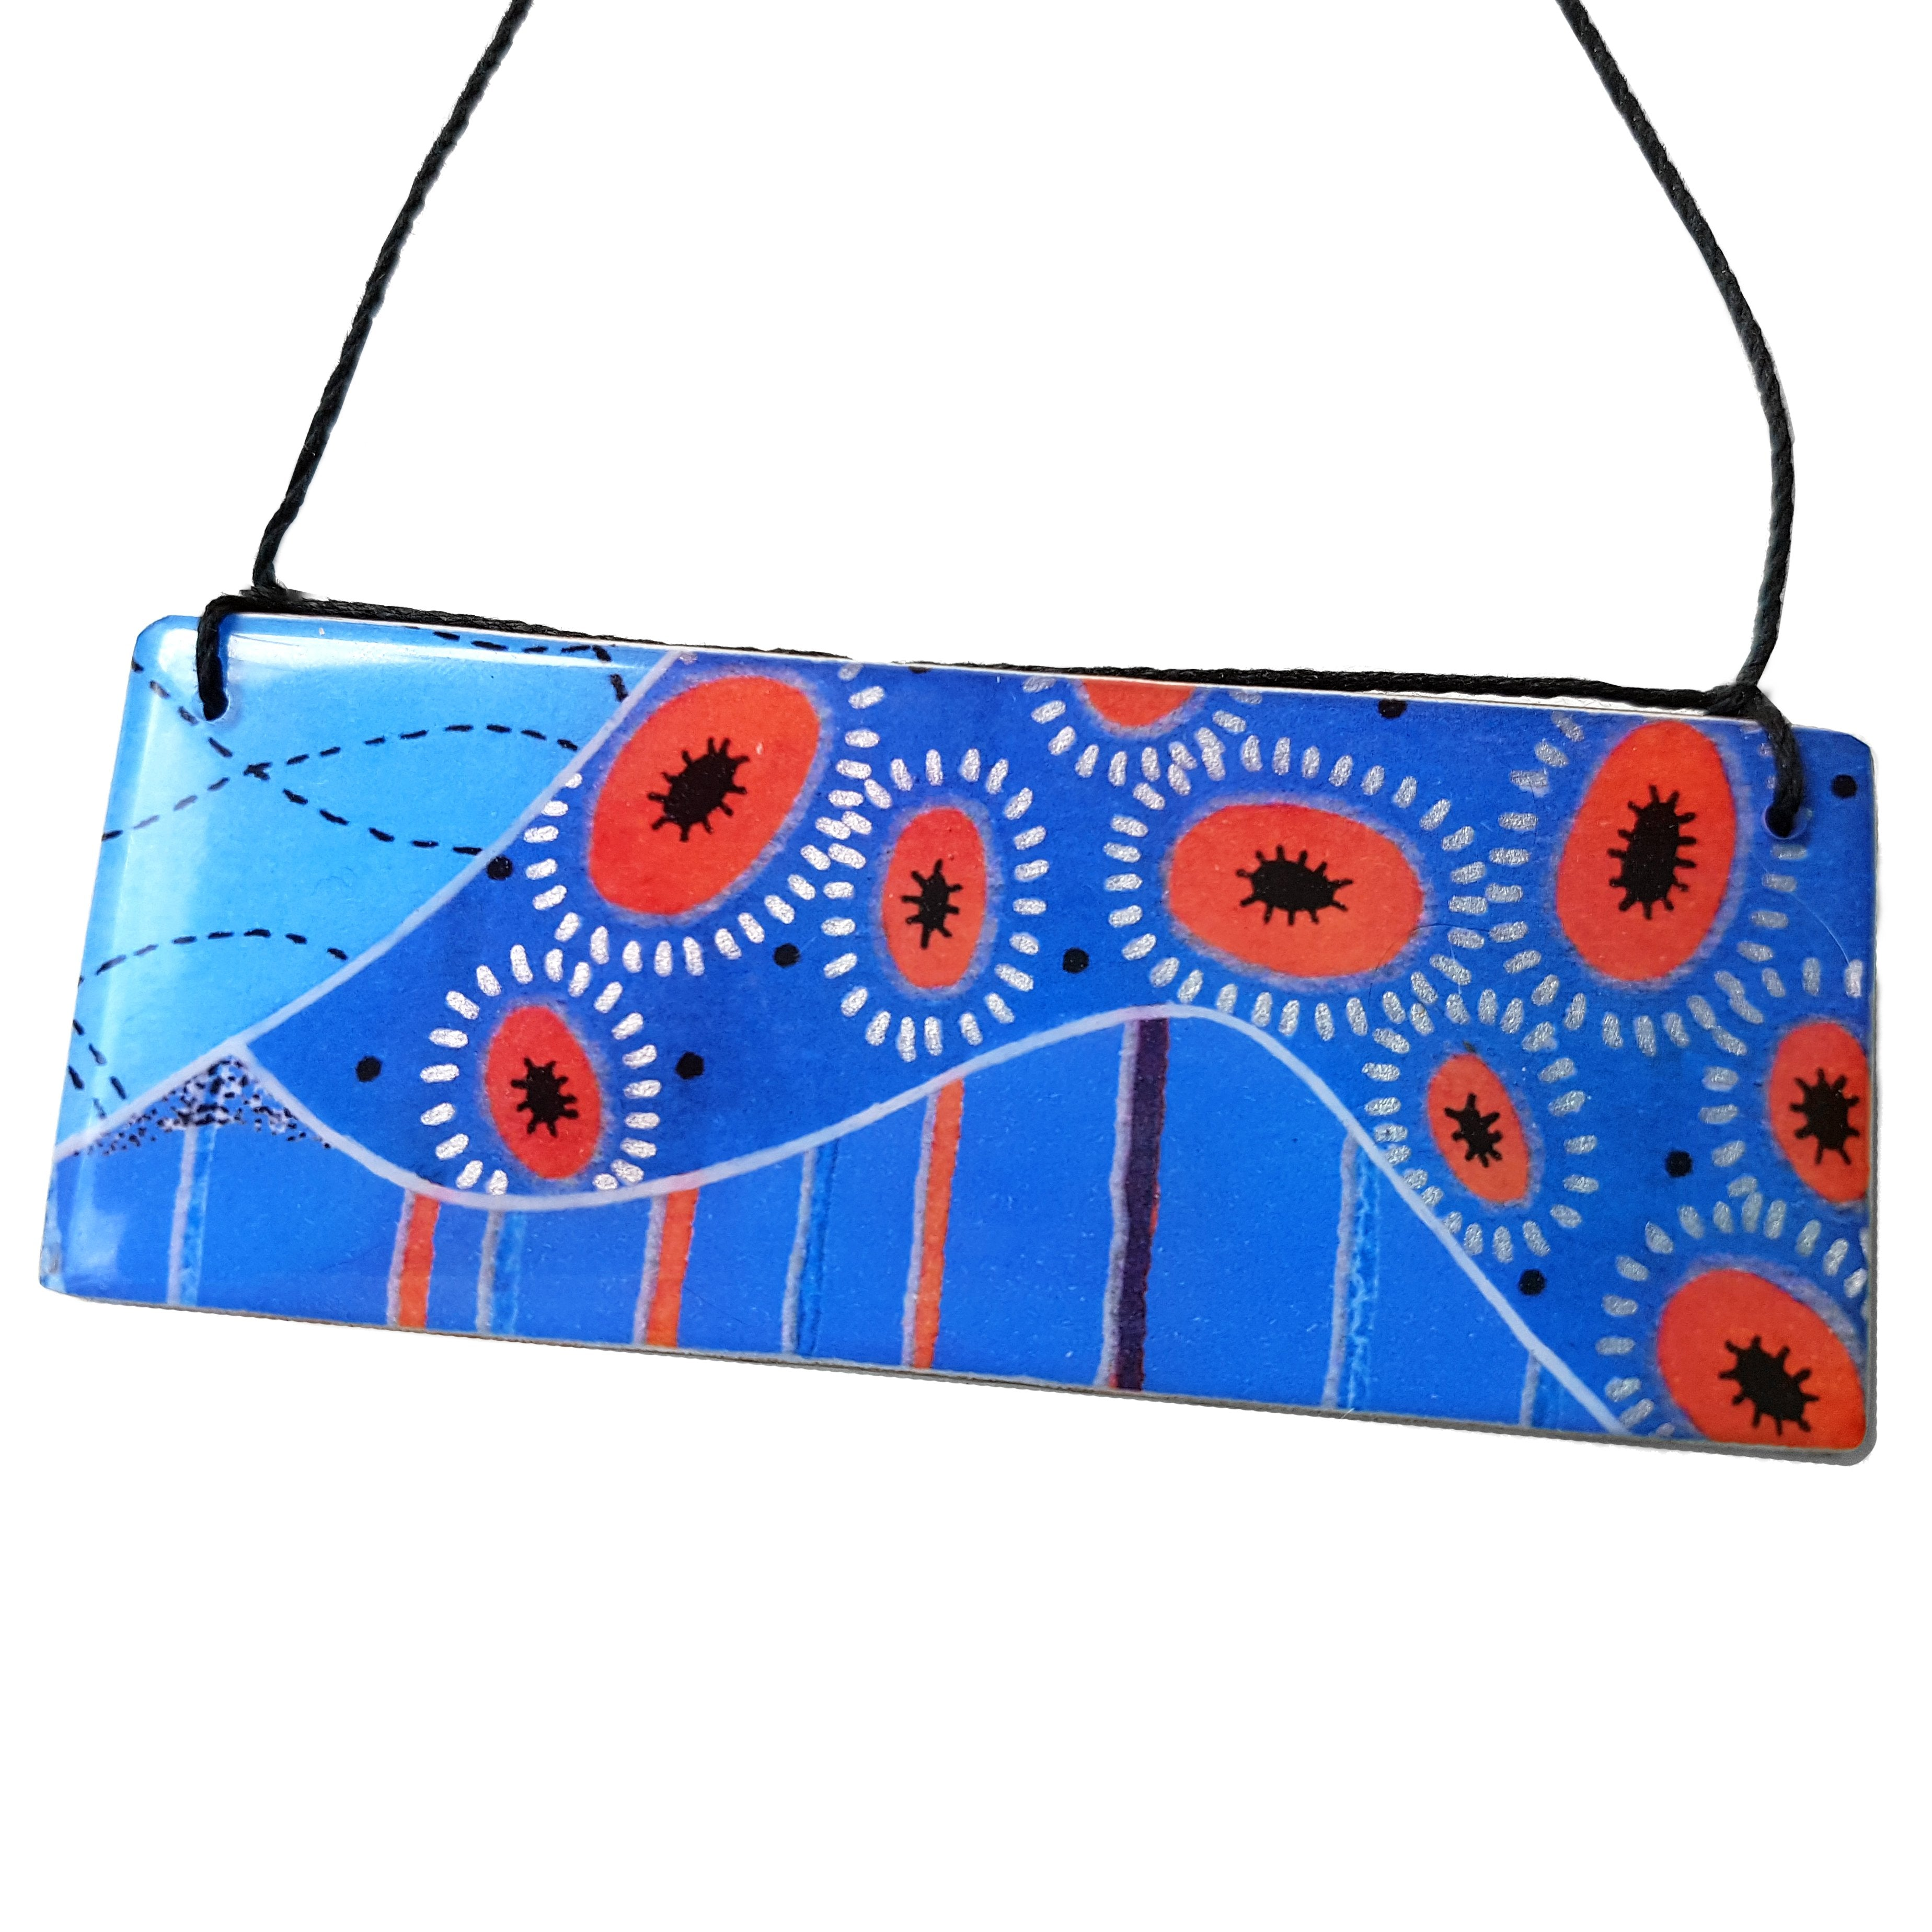 bar pendant necklace in the pattern tall poppy blue